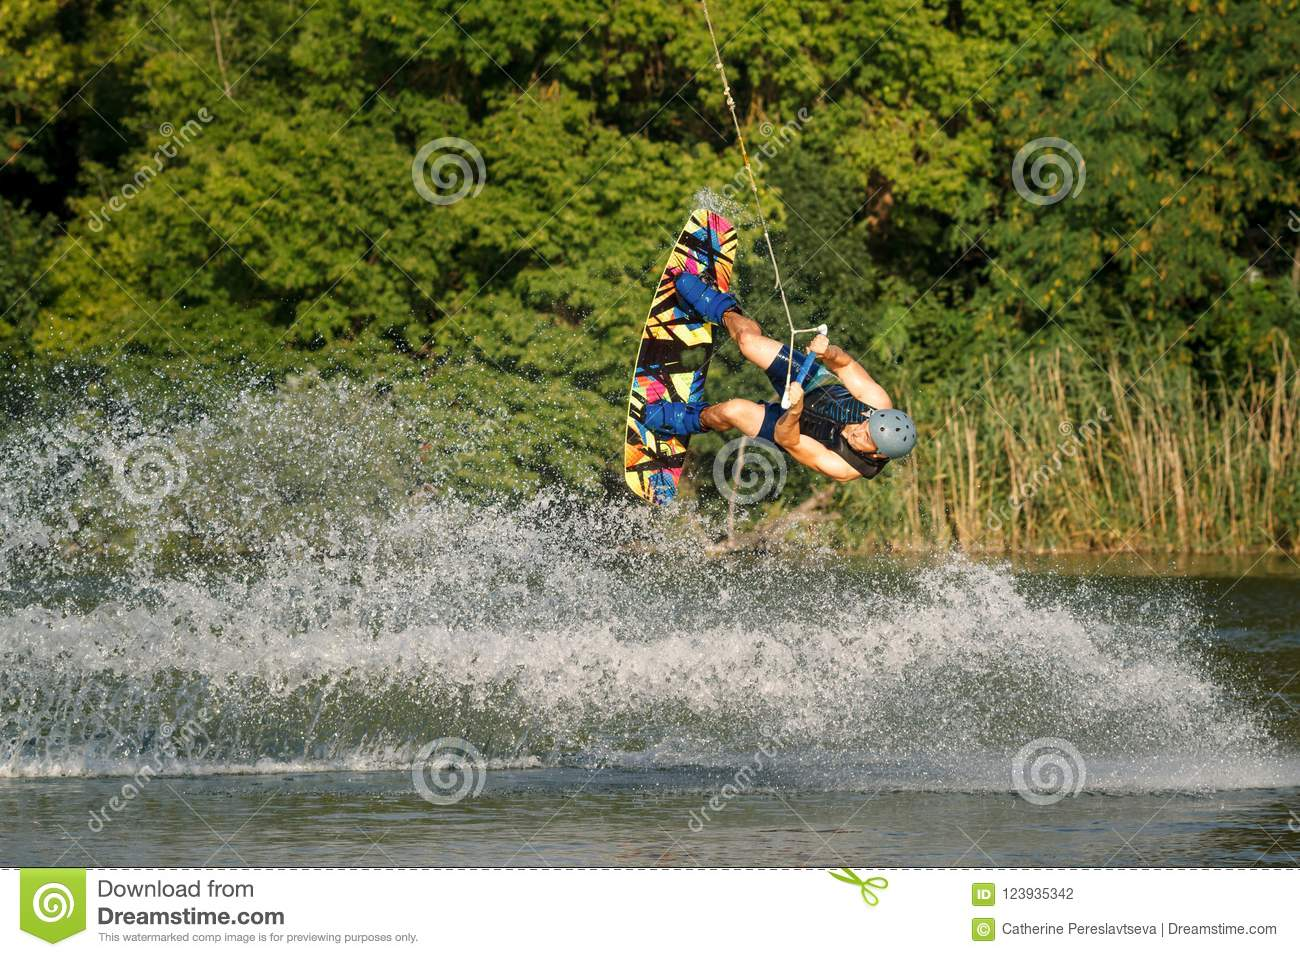 A man engaged in wakeboard on the lake performs jumps